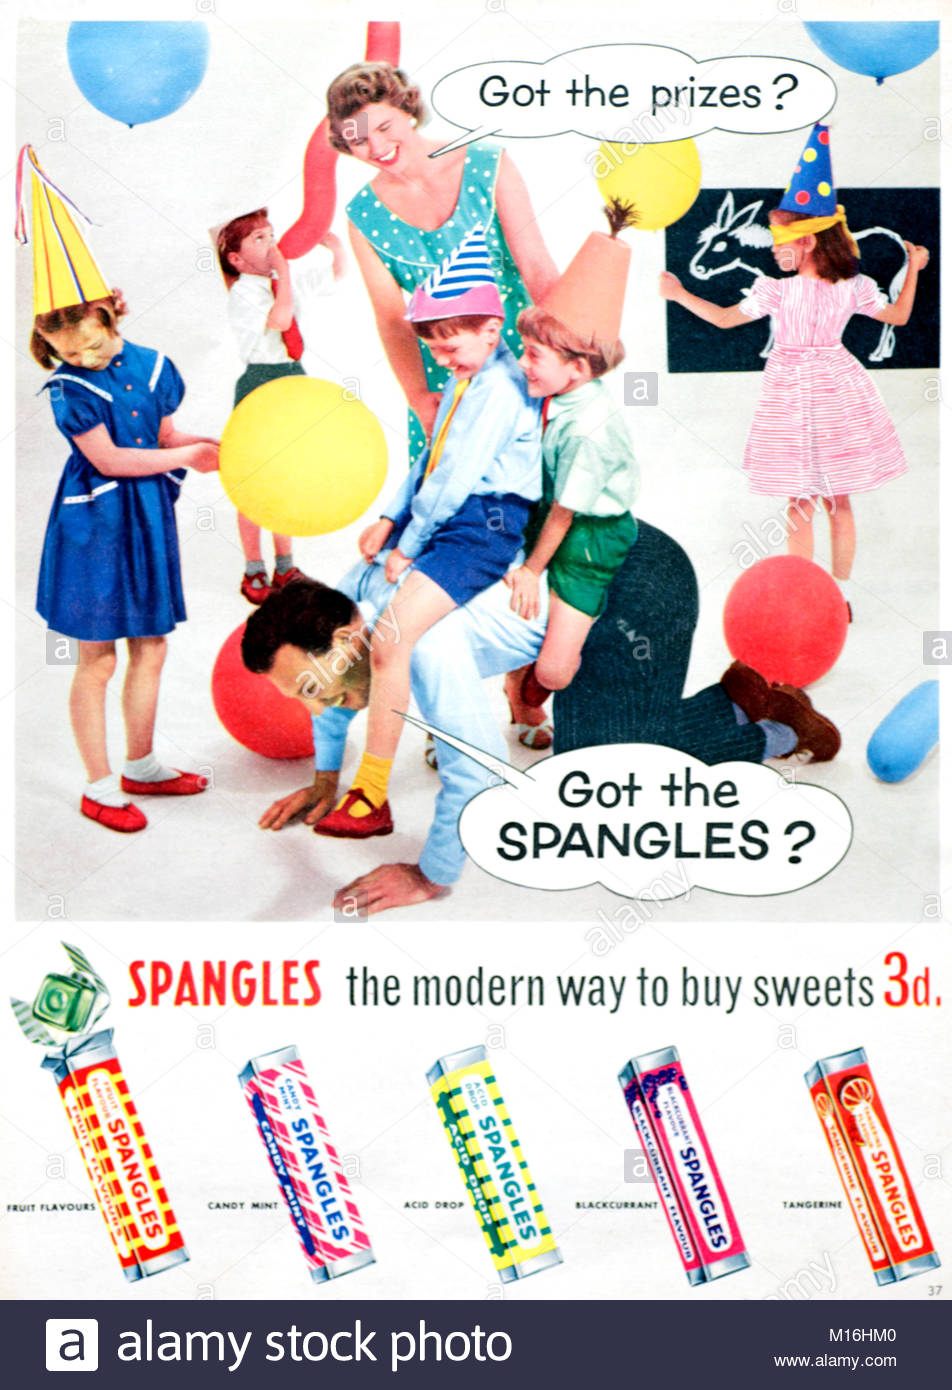 Spangles sweets vintage advertising 1950s - Stock Image